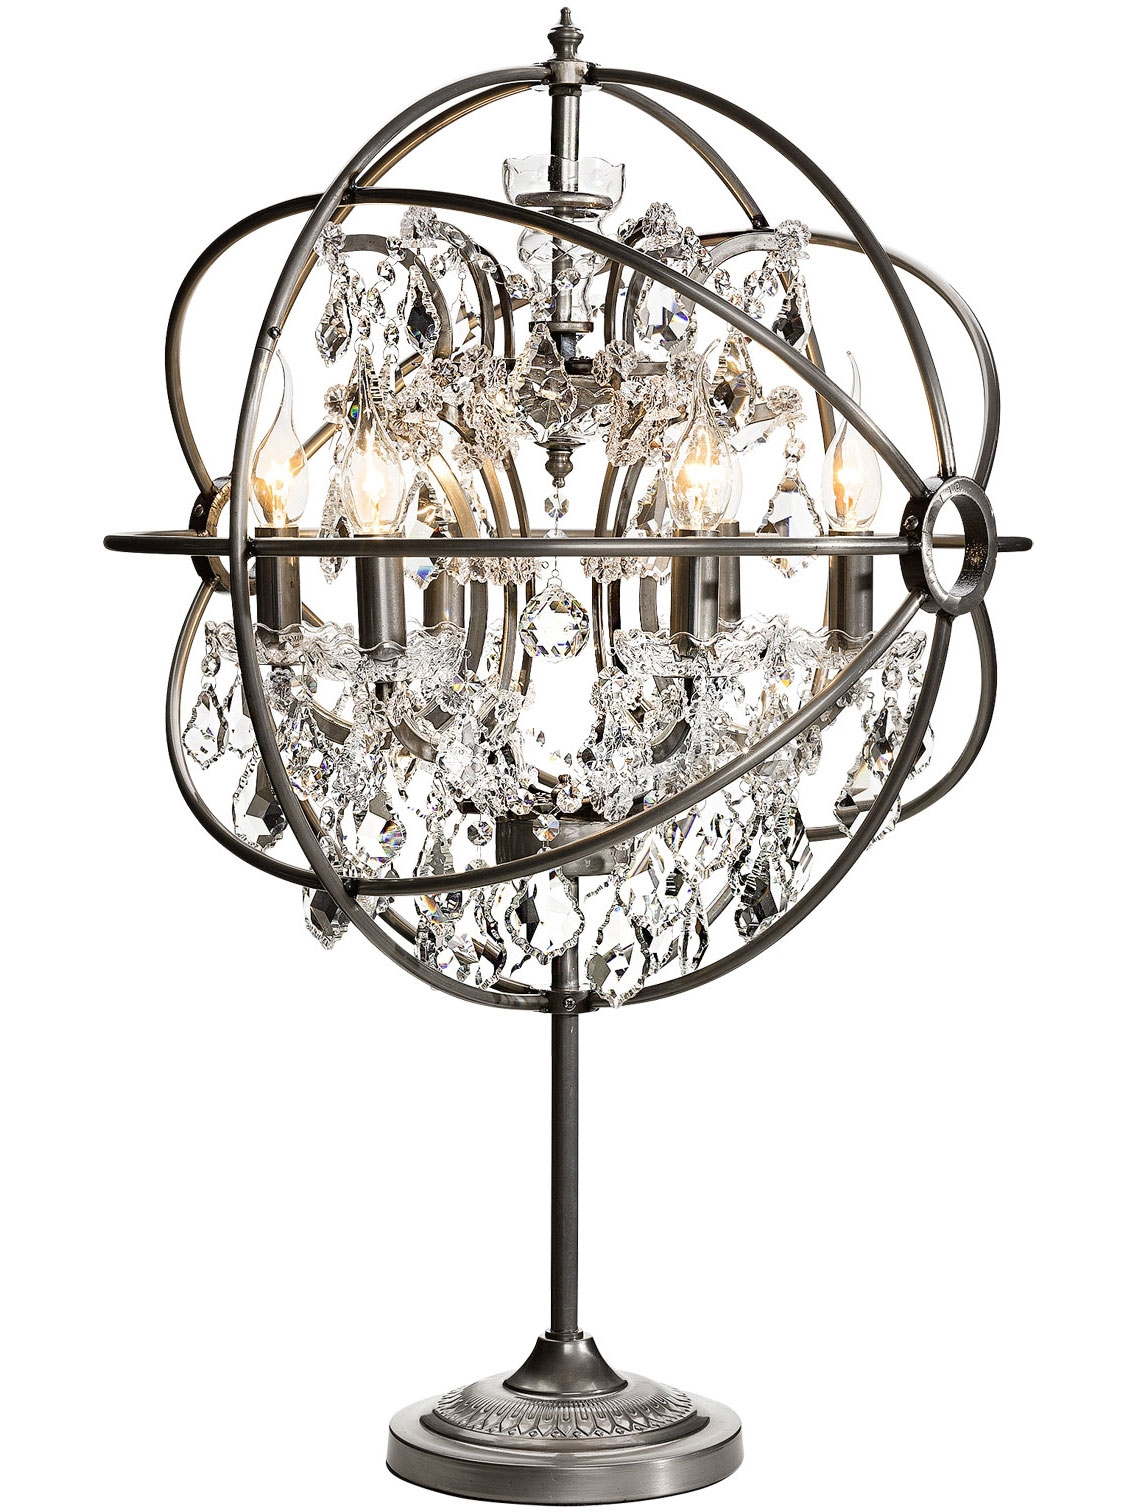 Table Lamp With Chandelier Best Of Table Lamp Inspiration Pertaining To Small Crystal Chandelier Table Lamps (Image 22 of 25)